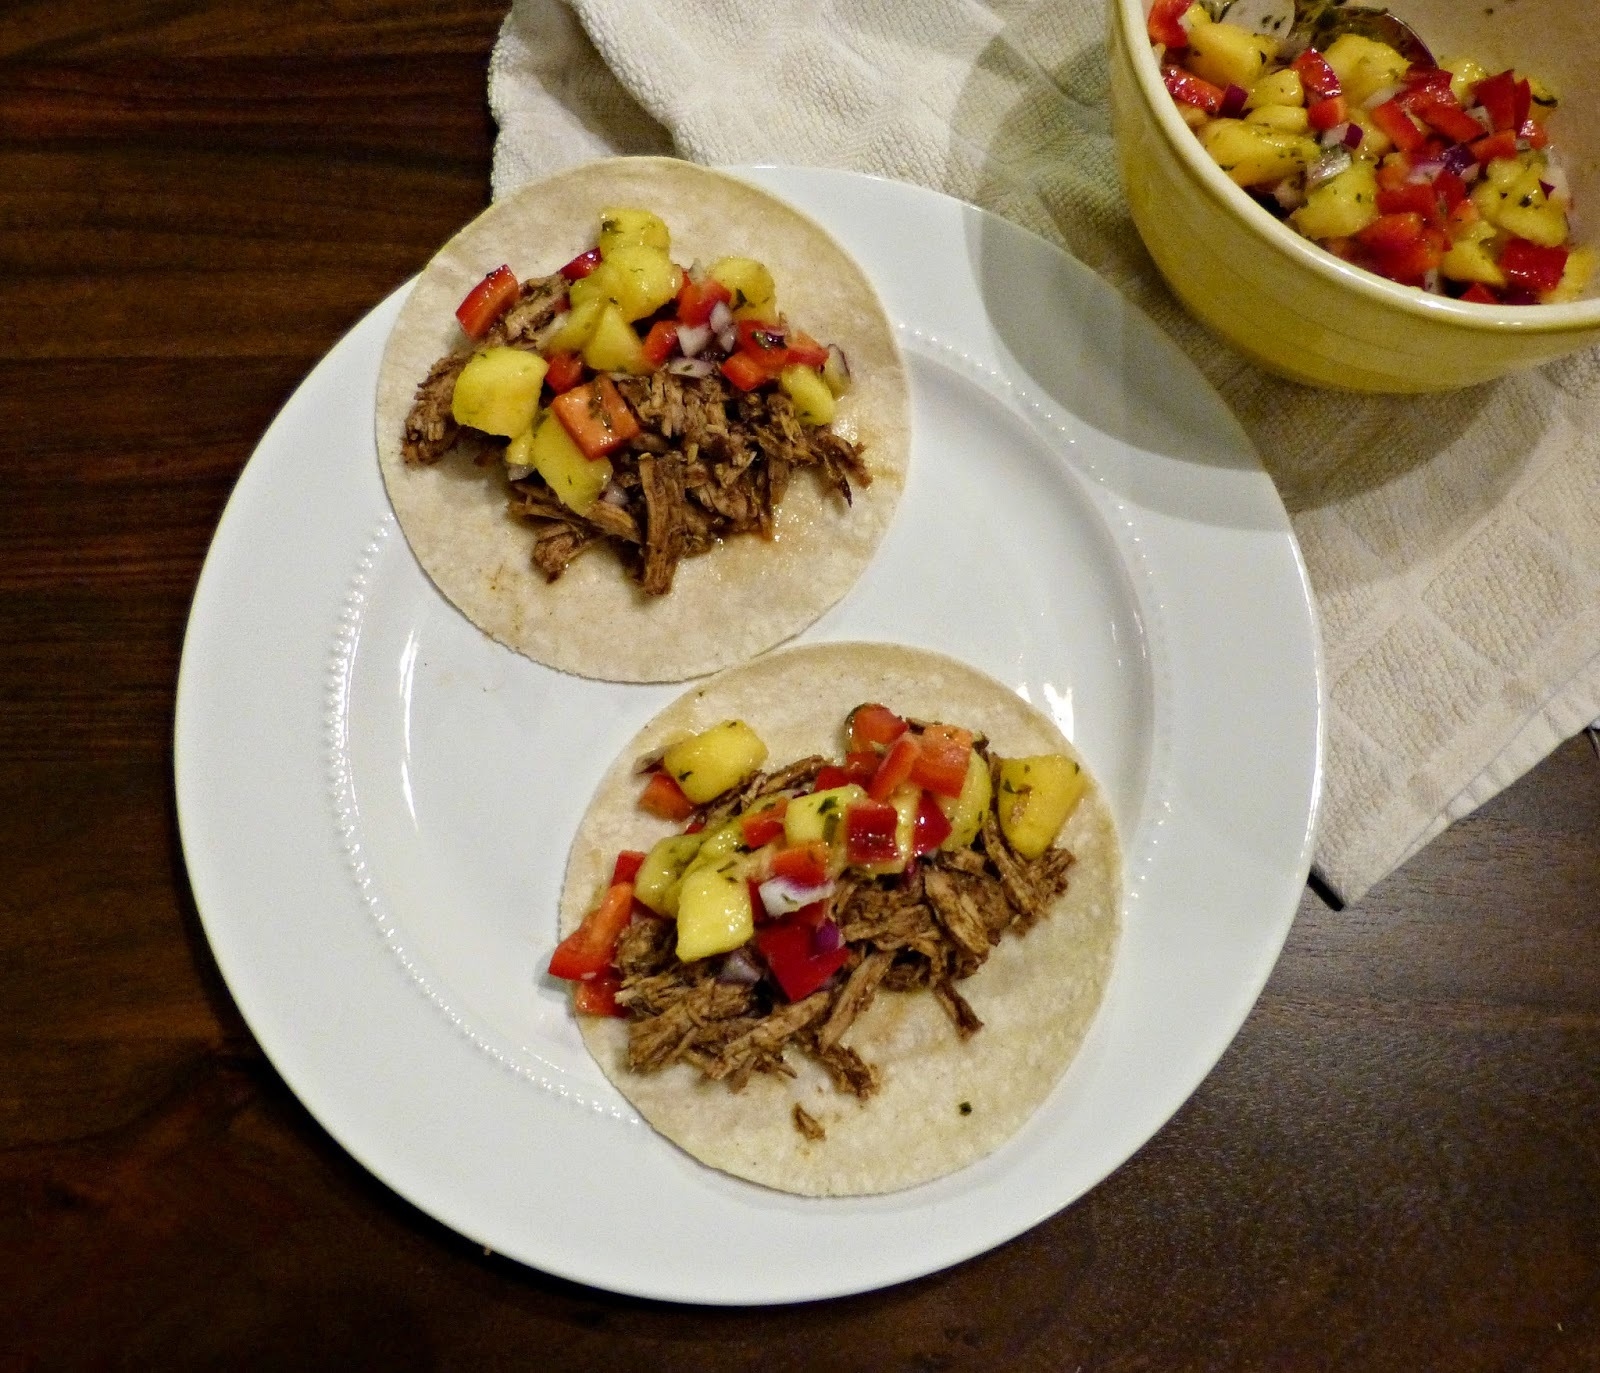 What's For Dinner Wednesday: Slow Cooker Jerk Pulled Pork Tacos with Mango Salsa